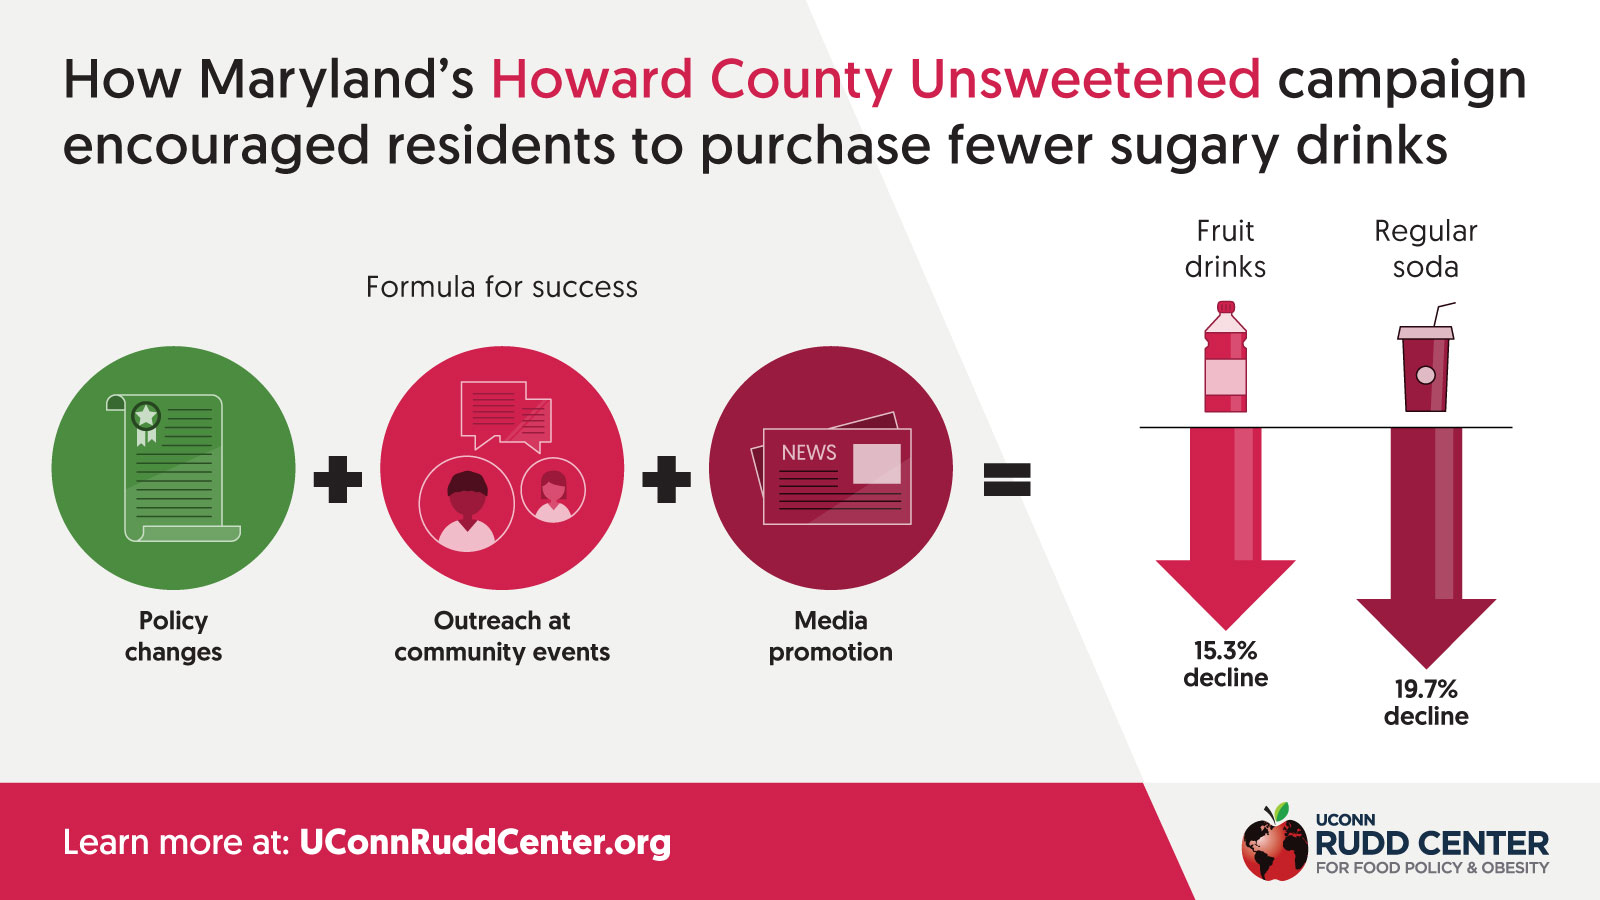 FinalHowardCountyUnsweetenedinfographic217.jpg